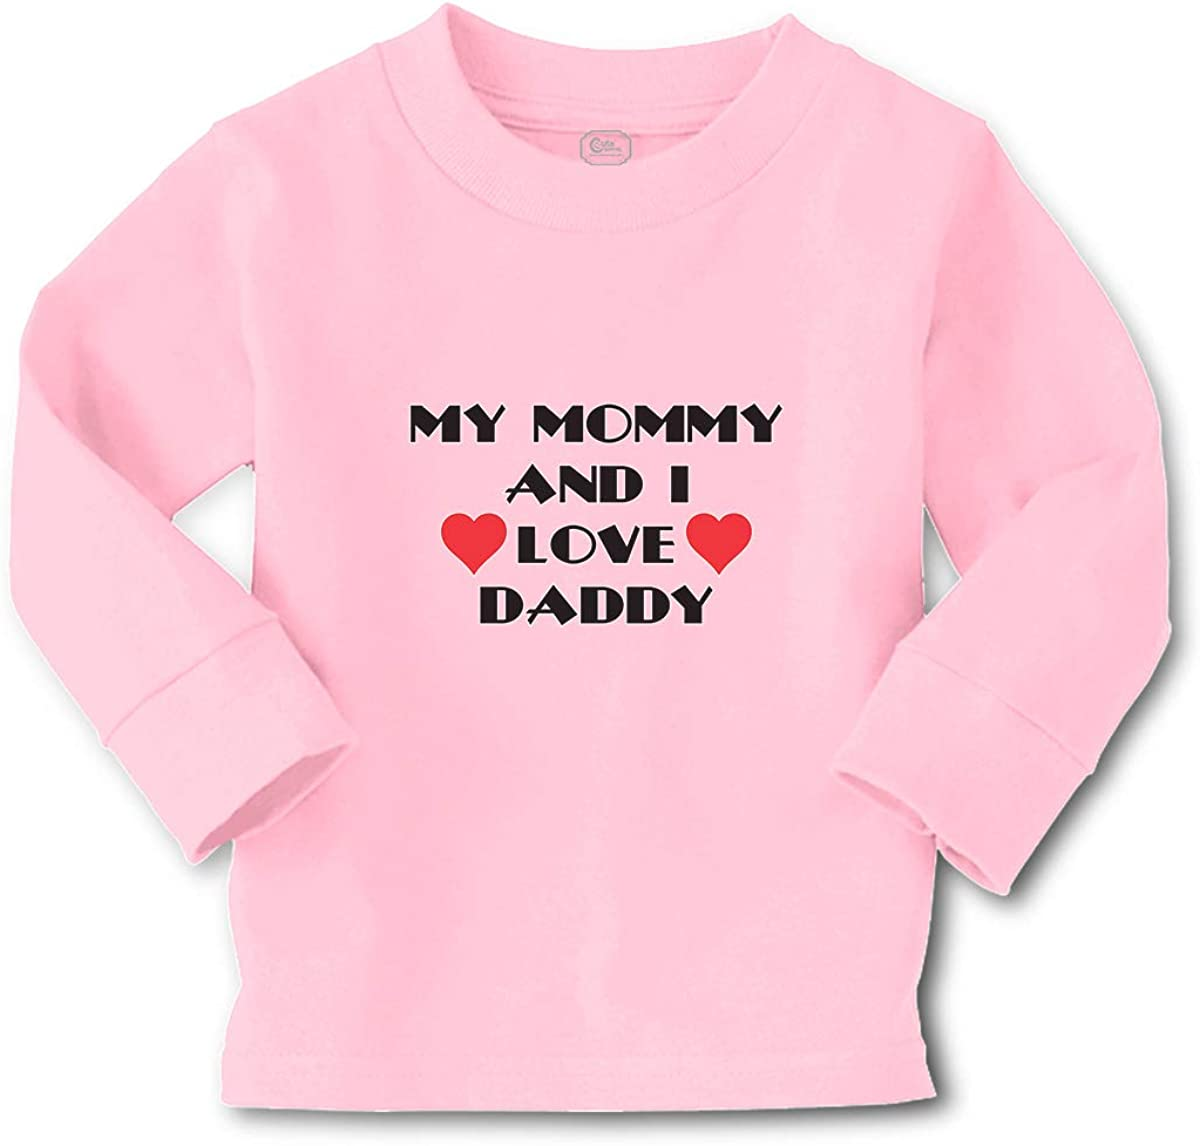 Kids Long Sleeve T Shirt My Mommy and I Love Daddy Cotton Boy & Girl Clothes Funny Graphic Tee Soft Pink Design Only 4T